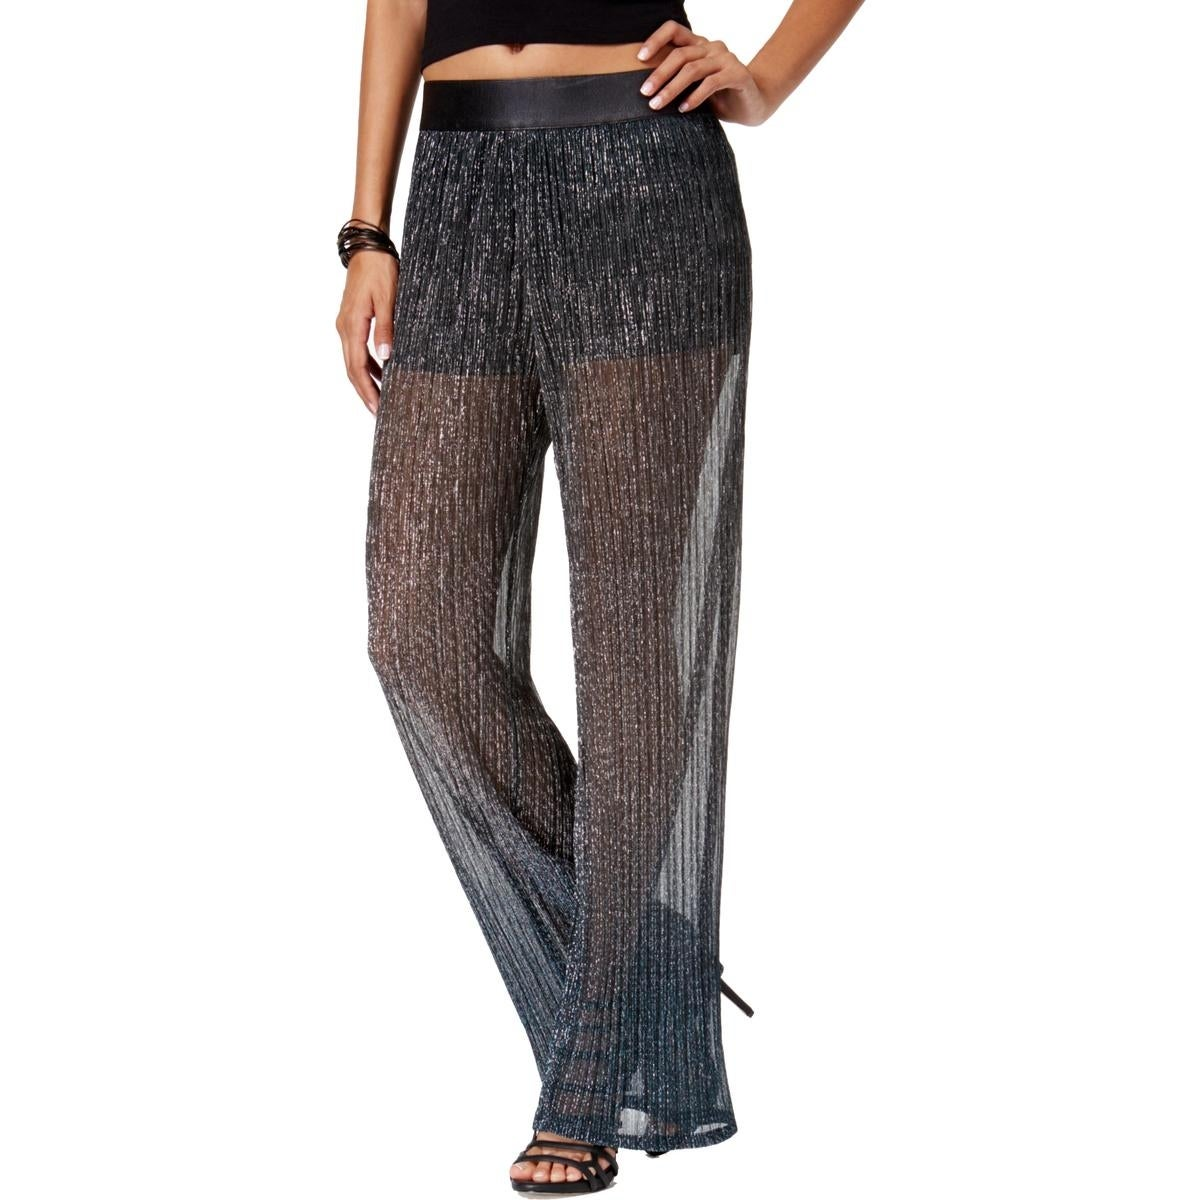 9b62d7d29389 Shop Be Bop Womens Juniors Straight Leg Pants Metallic Ombre - Free  Shipping On Orders Over  45 - Overstock - 27219859